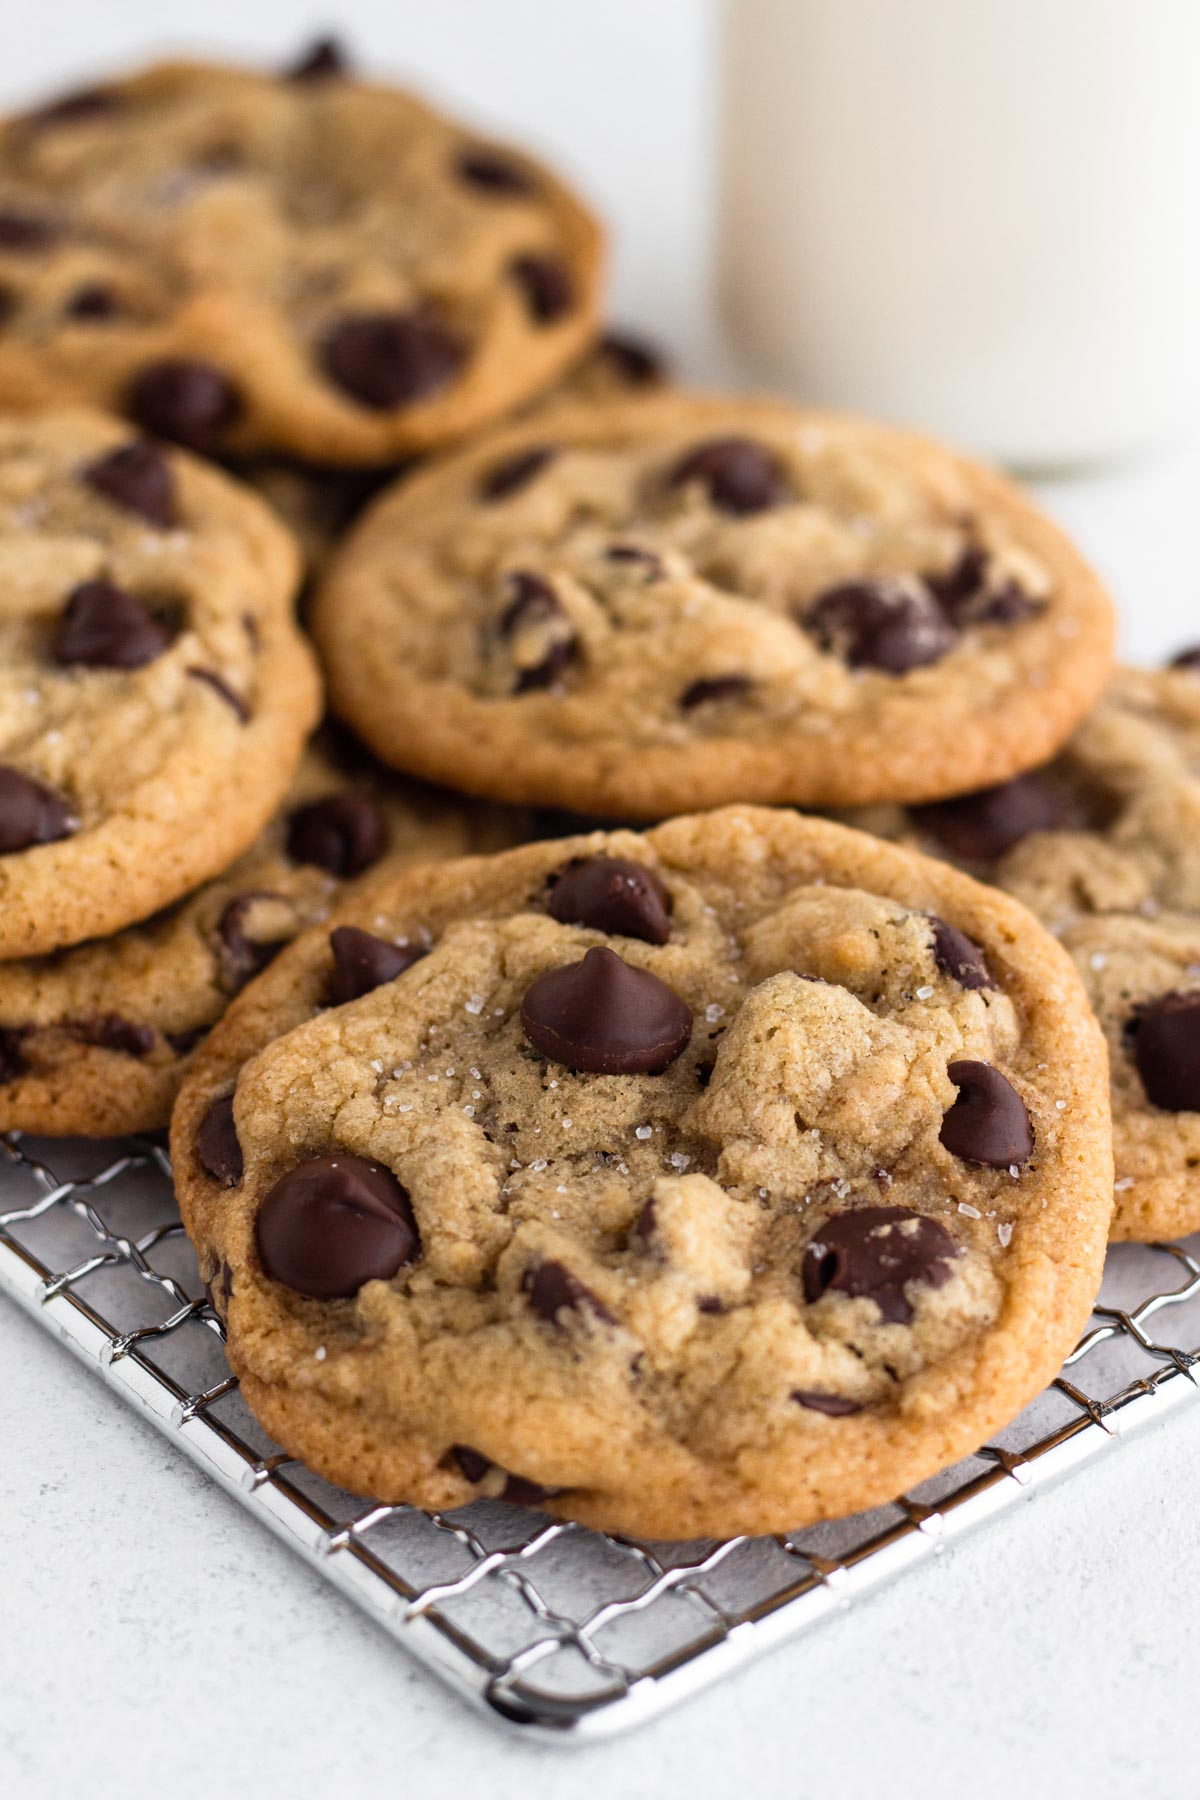 no chill chocolate chip cookies on a cooling rack next to a glass of milk